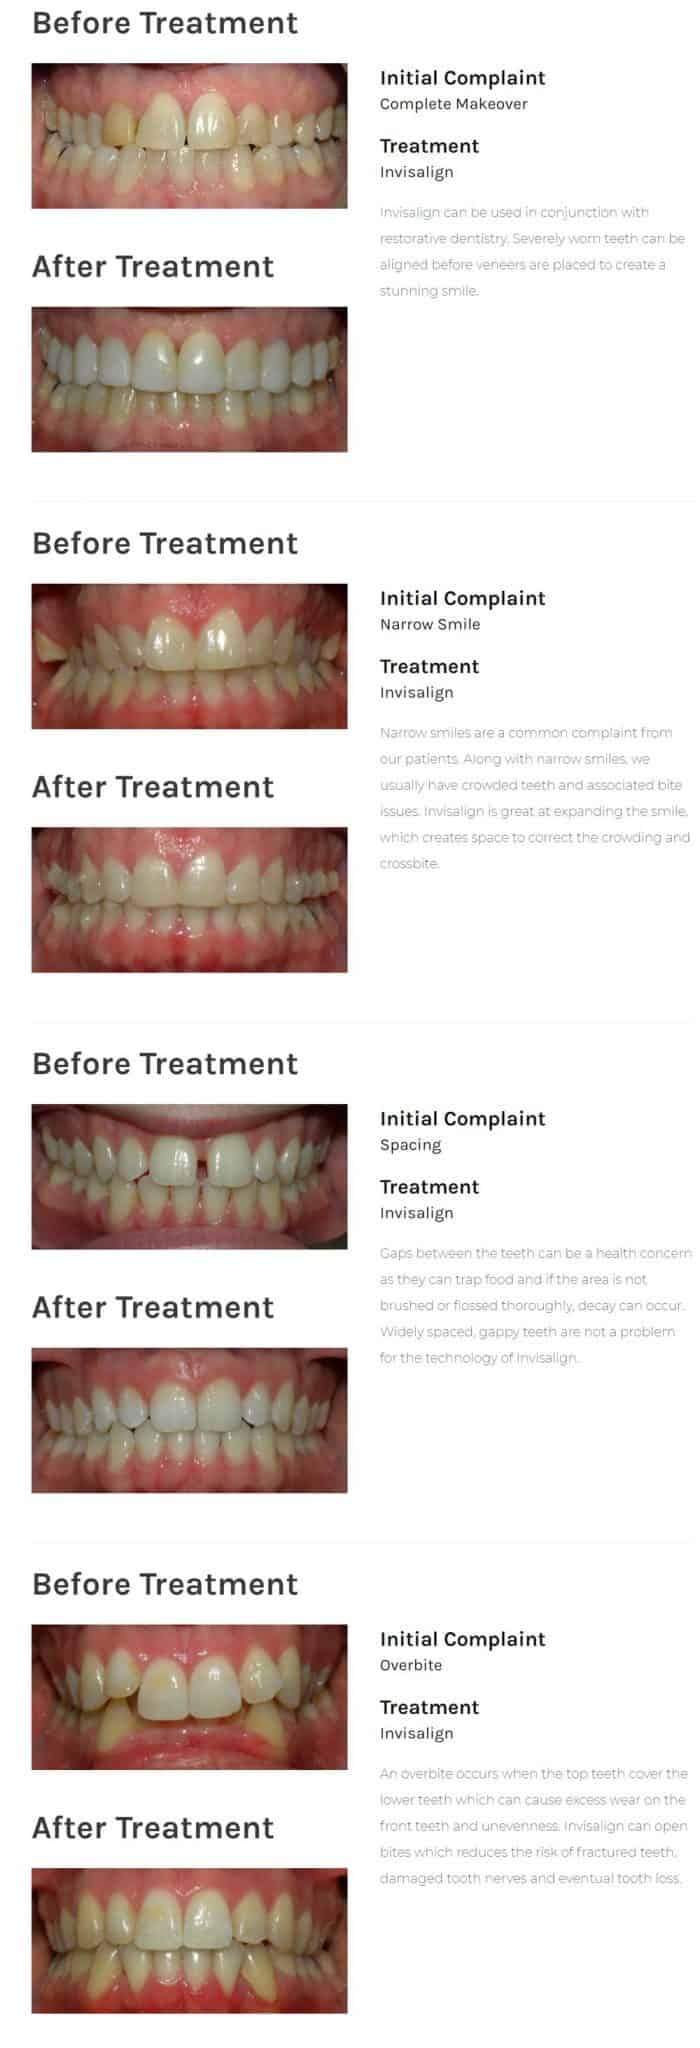 Invisalign Invisible Braces: Reviews, Costs & FAQ - Electric